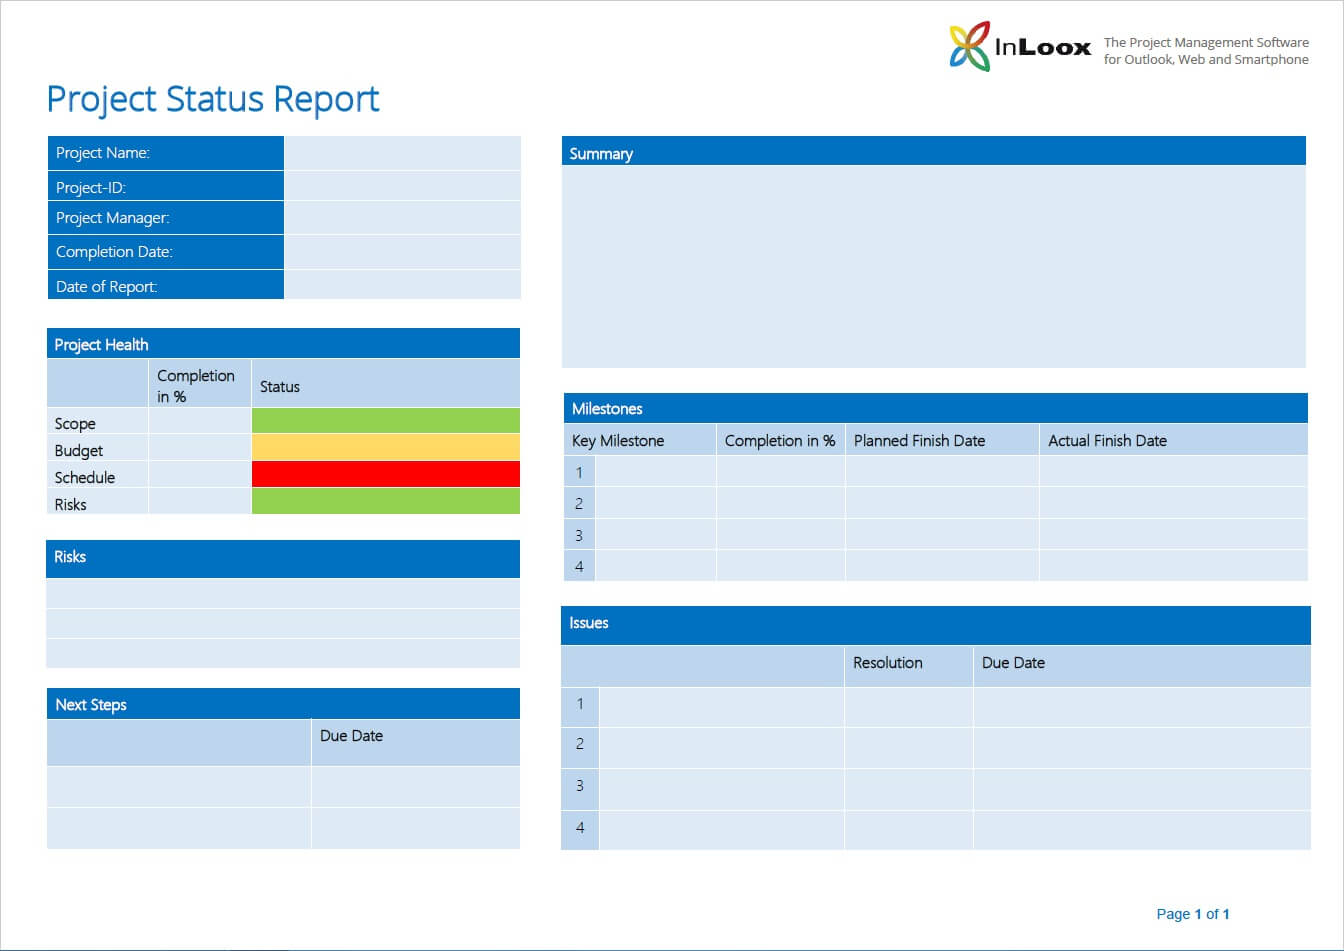 034 Project Status Report Template Ideas Imposing Powerpoint regarding One Page Status Report Template